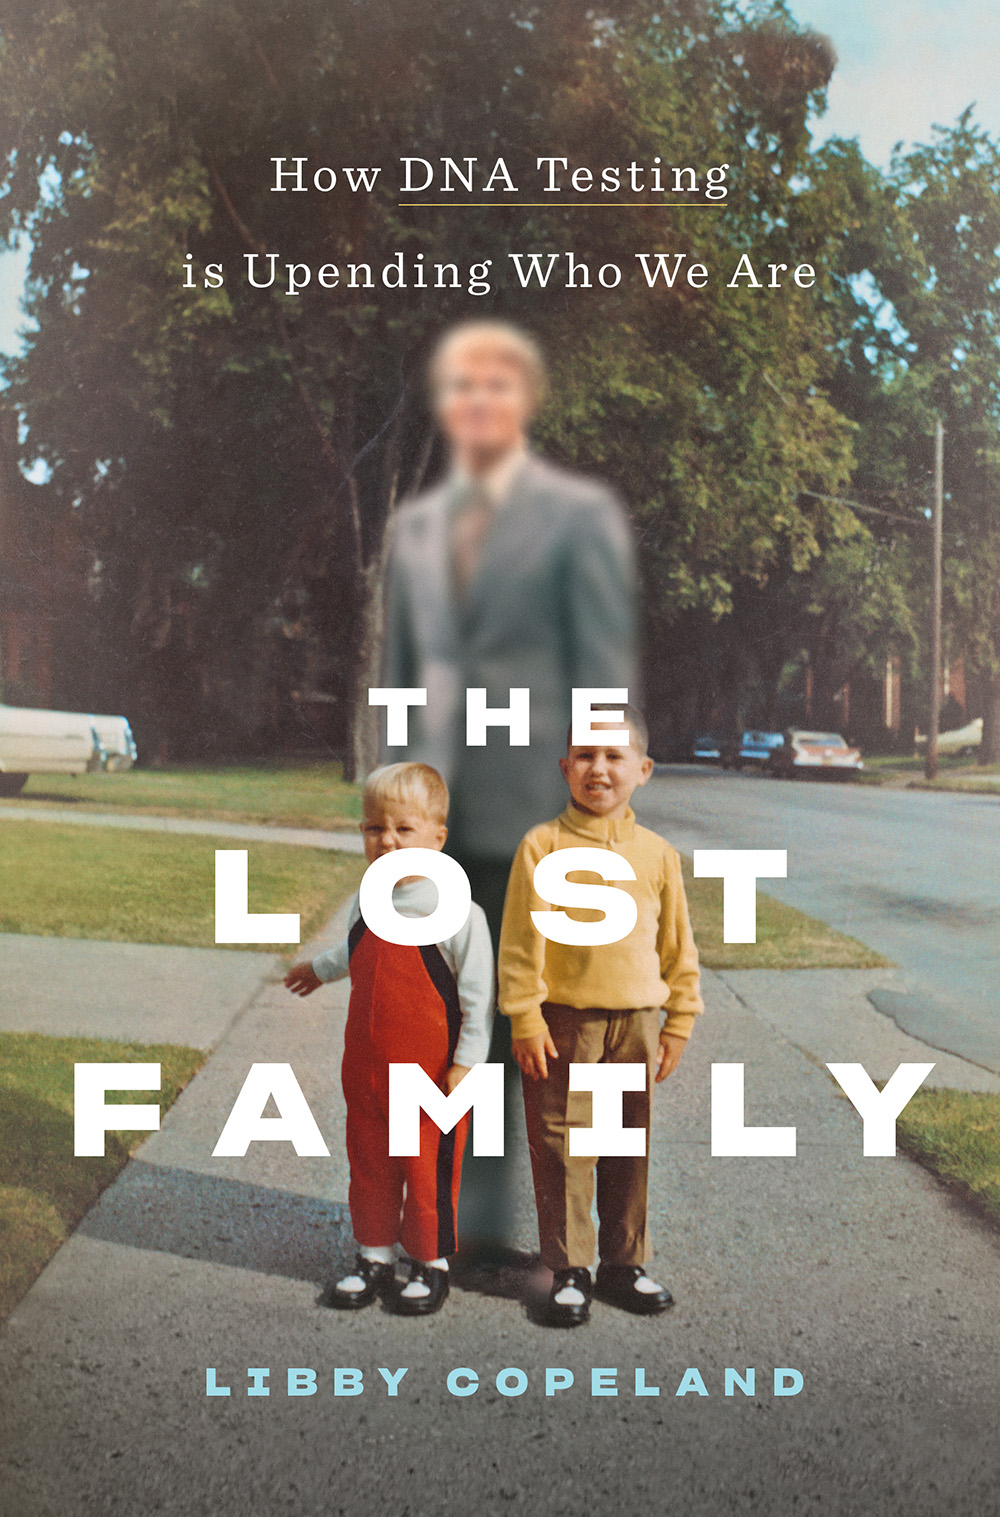 The Lost Family: How DNA Testing Is Uncovering Secrets, Reuniting Relatives, and Upending Who We Are